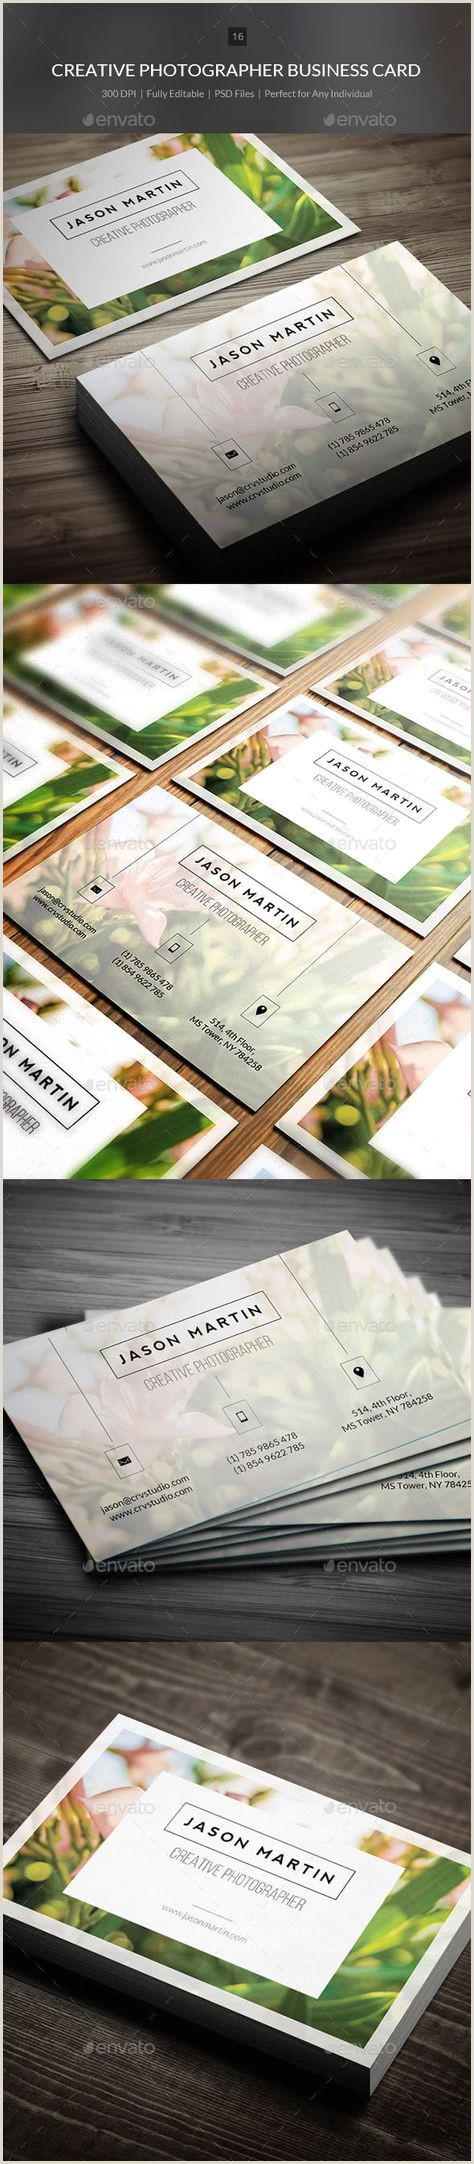 Pictures Of Some Of The Best Business Cards 40 Trendy Ideas Photography Business Cards Template Creative